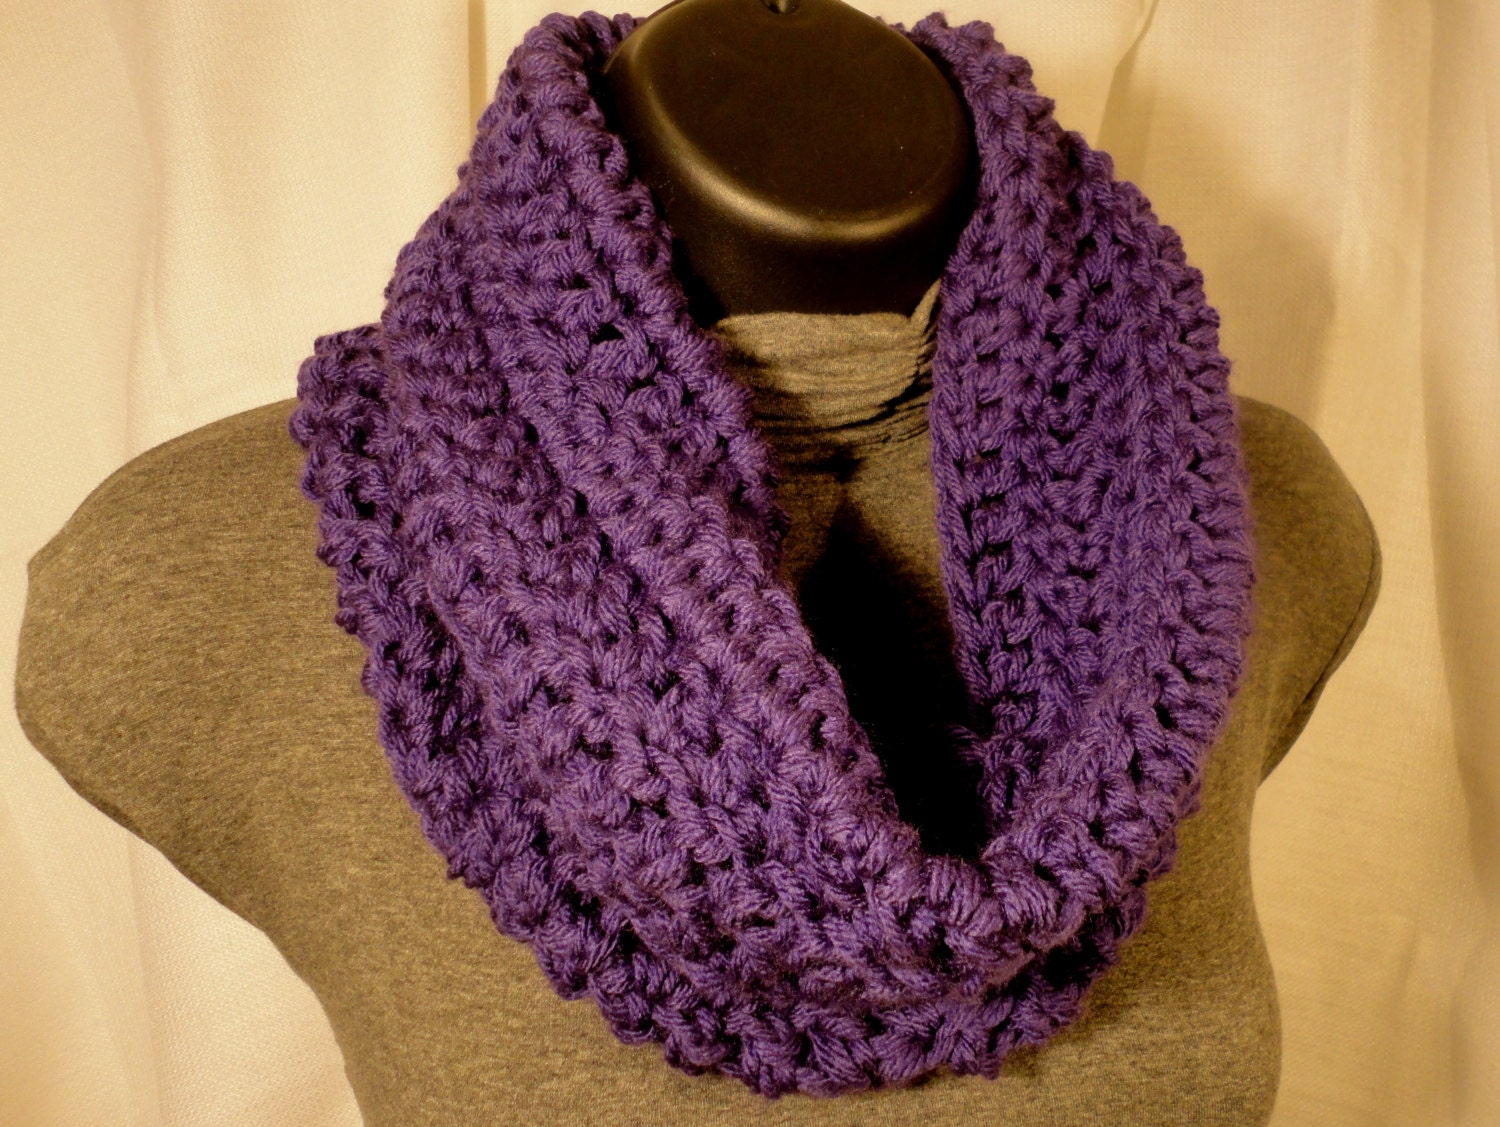 How To Crochet Scarfs : Crochet Scarf Cowl Neck Warmer Purple Grape by VillaYarnDesigns Cowl ...